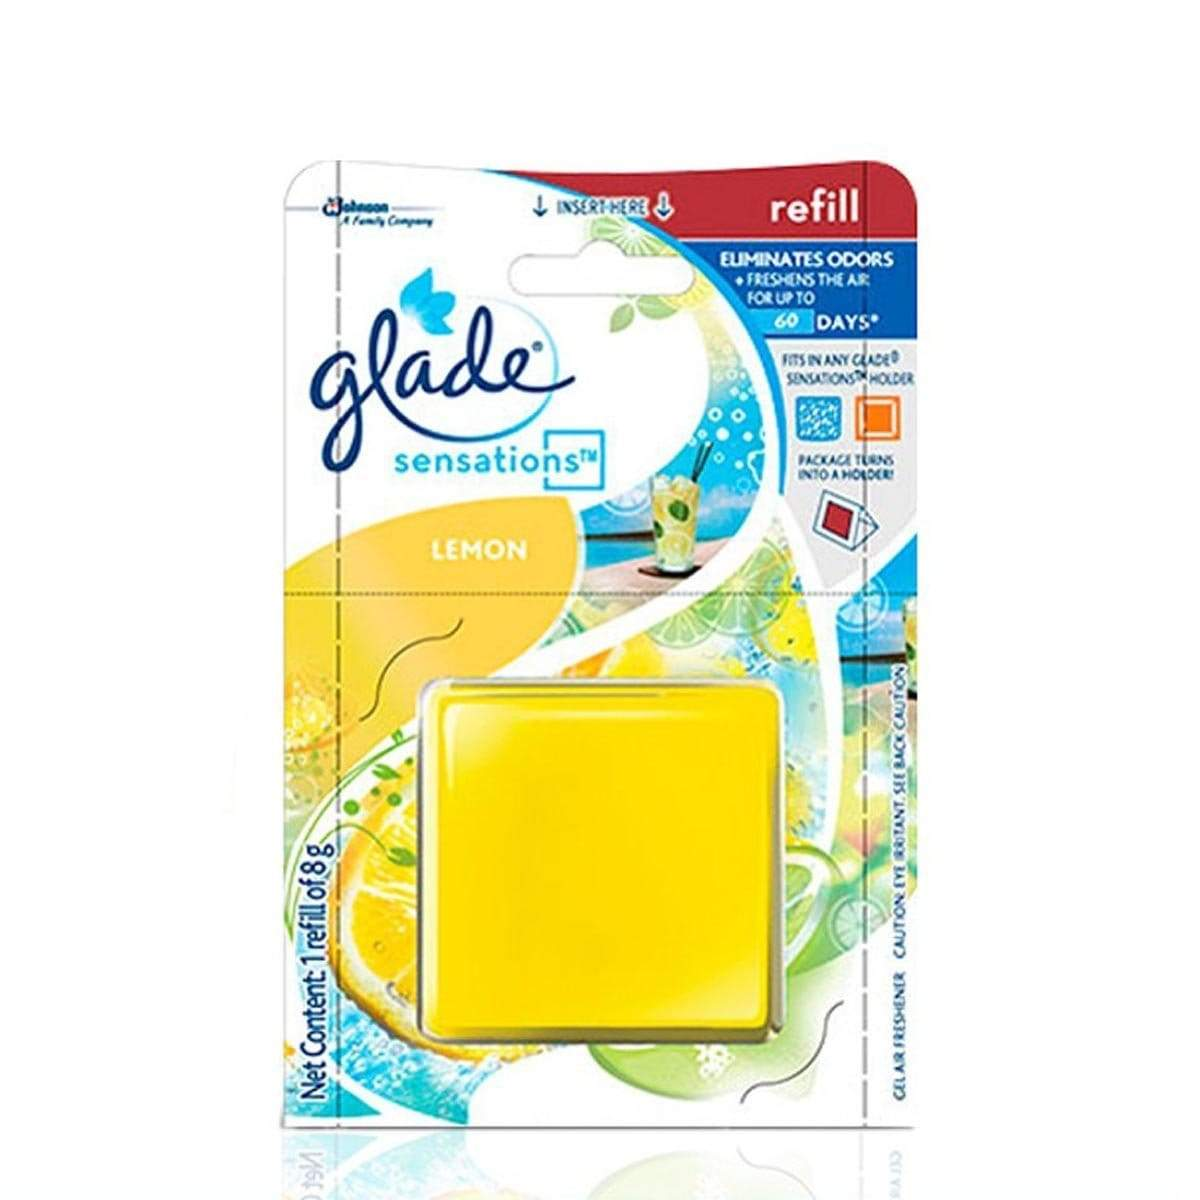 Glade Sensations Refill Lemon Car Air Freshener 8g